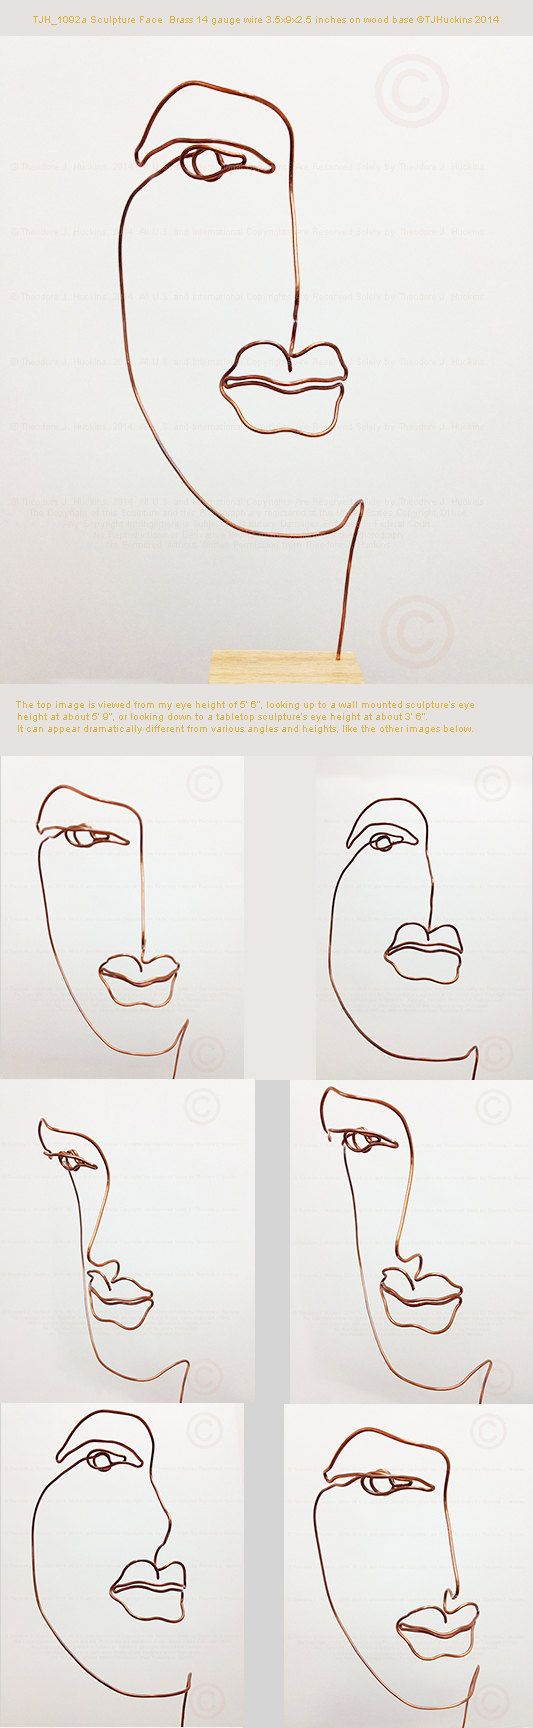 Wire line drawing metal sculpture of a face that is 4\